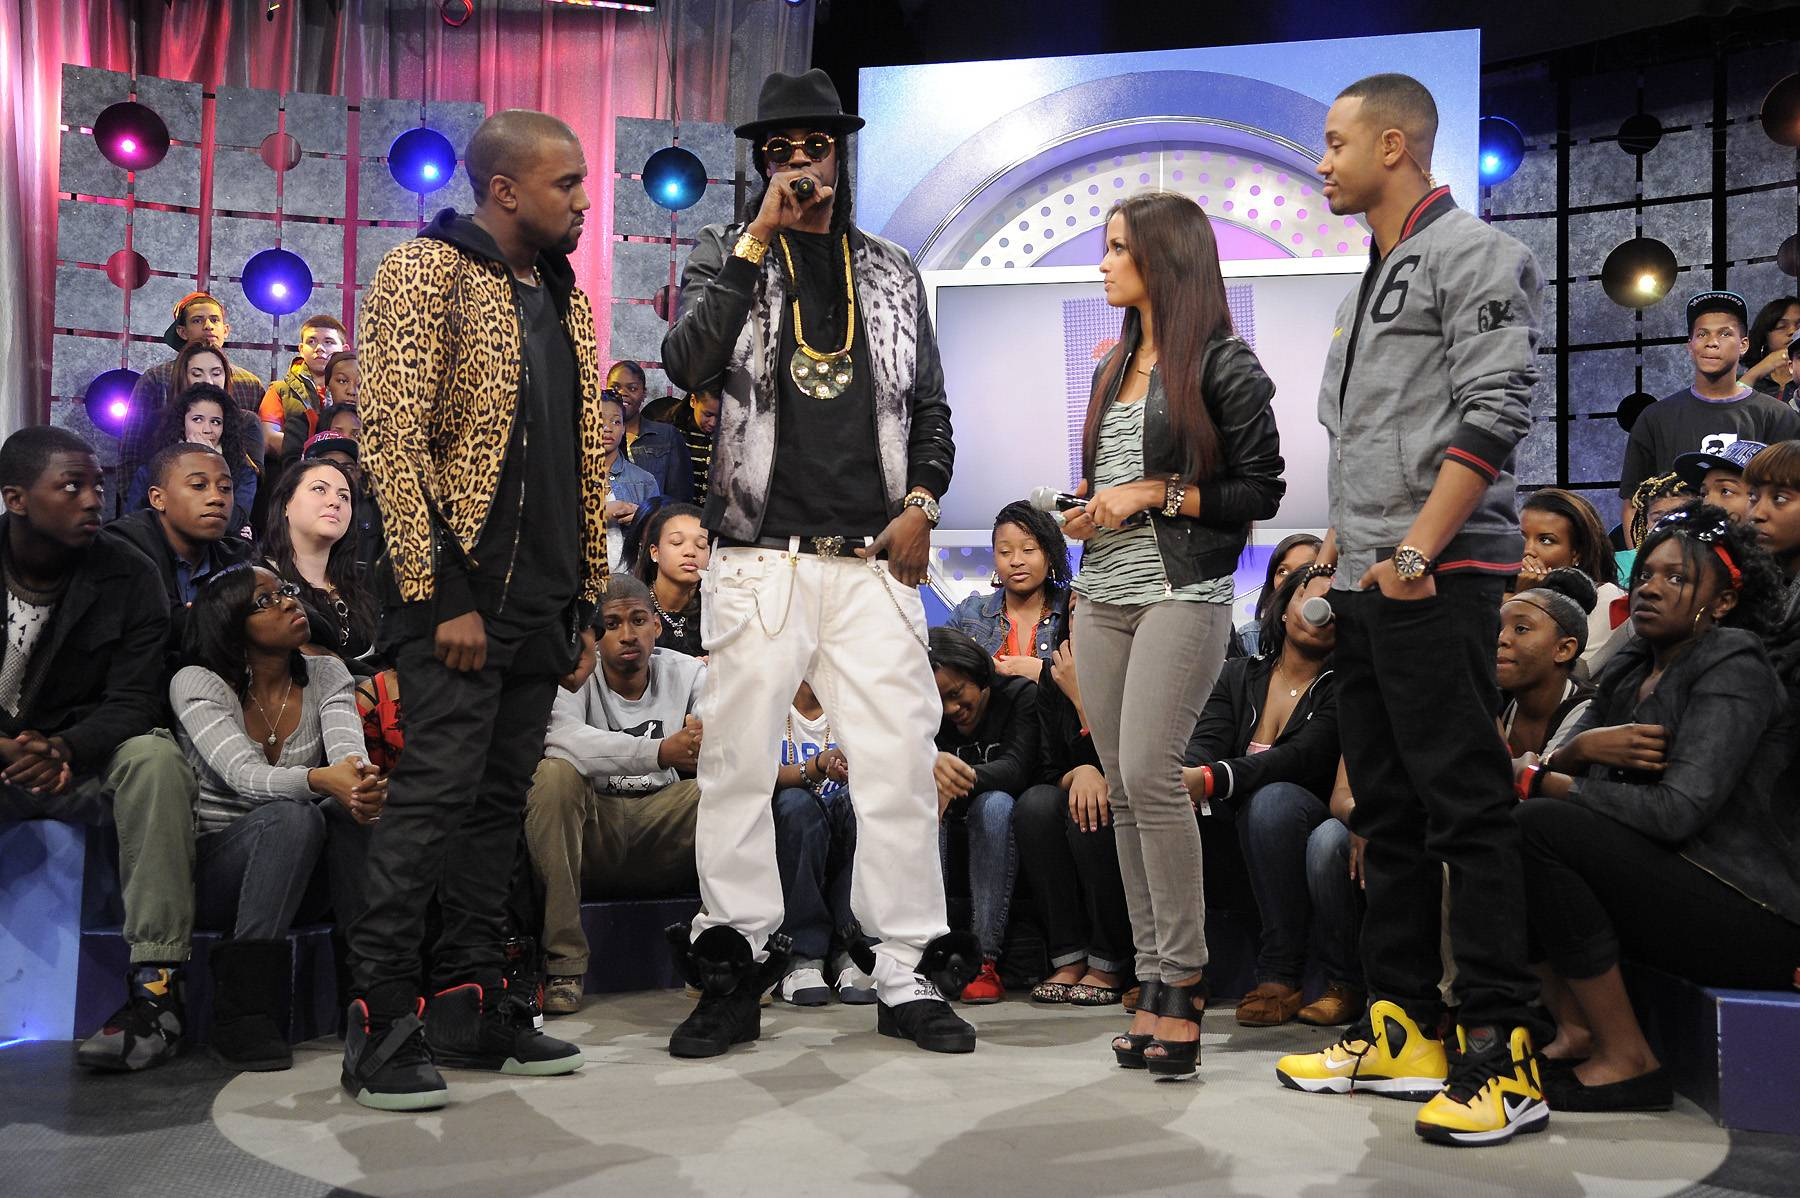 Bout It - Kanye West, 2 Chainz, Rocsi Diaz and Terrence J at 106 & Park, April 9, 2012. (photo: John Ricard / BET)